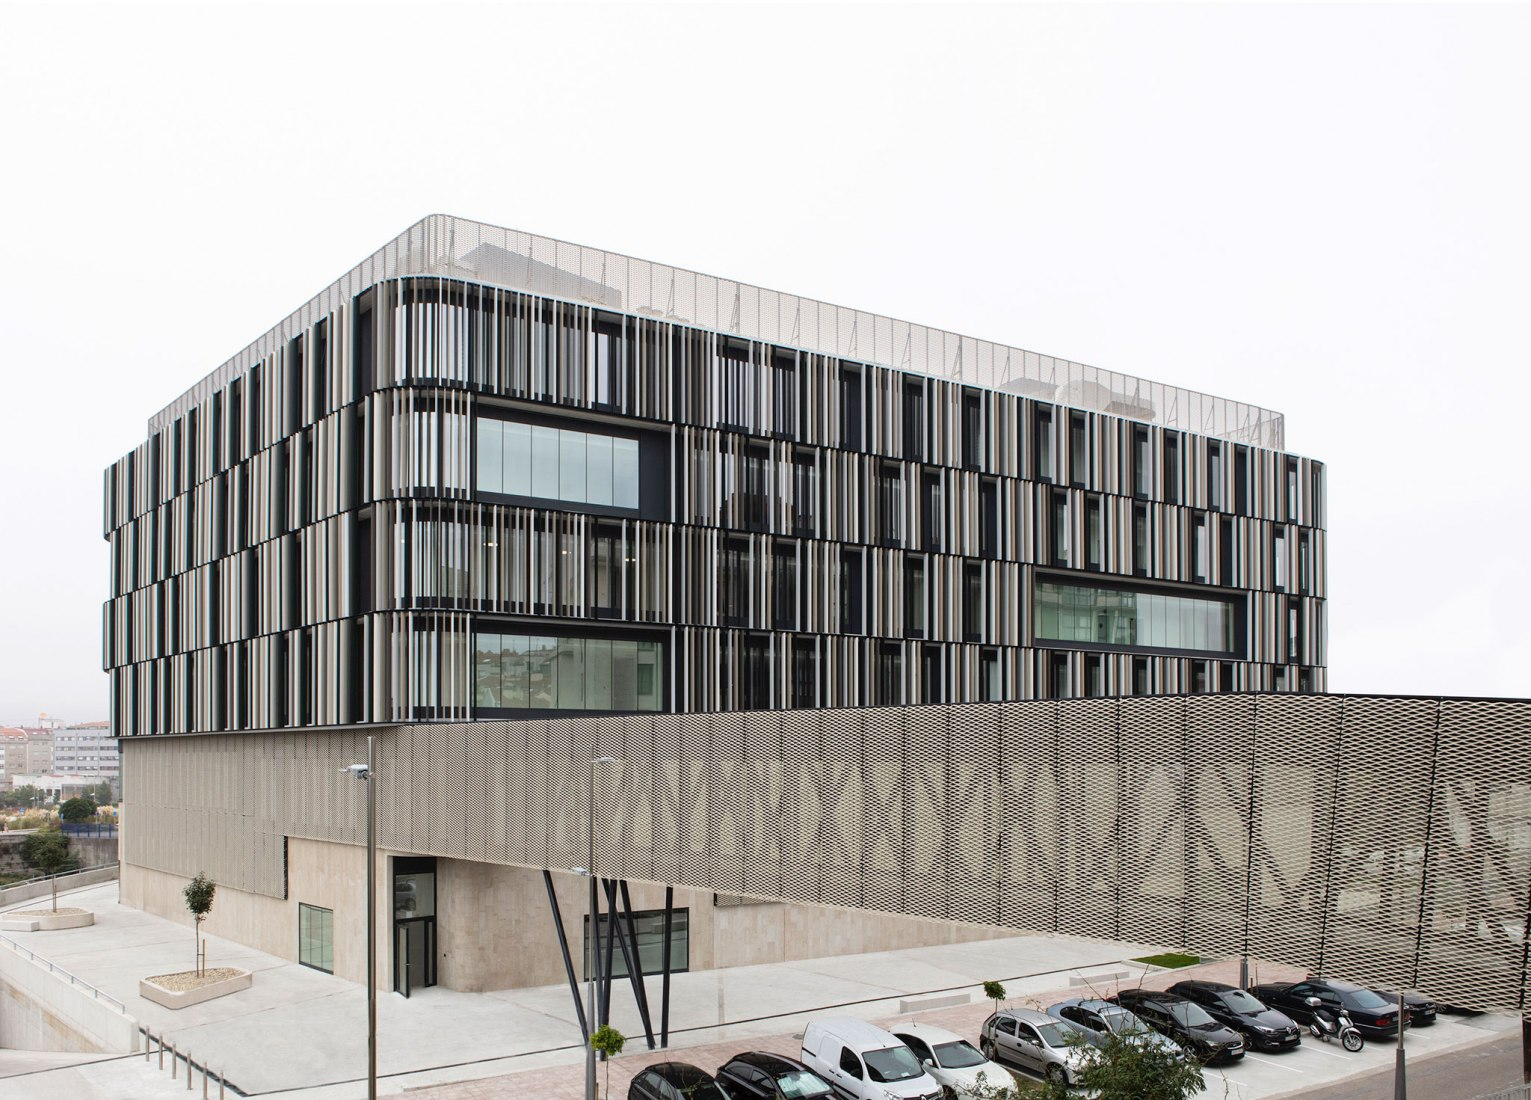 New Courthouse in Pontevedra by Díaz y Díaz Arquitectos and Naiara Montero. Photograph by Juan Rodríguez